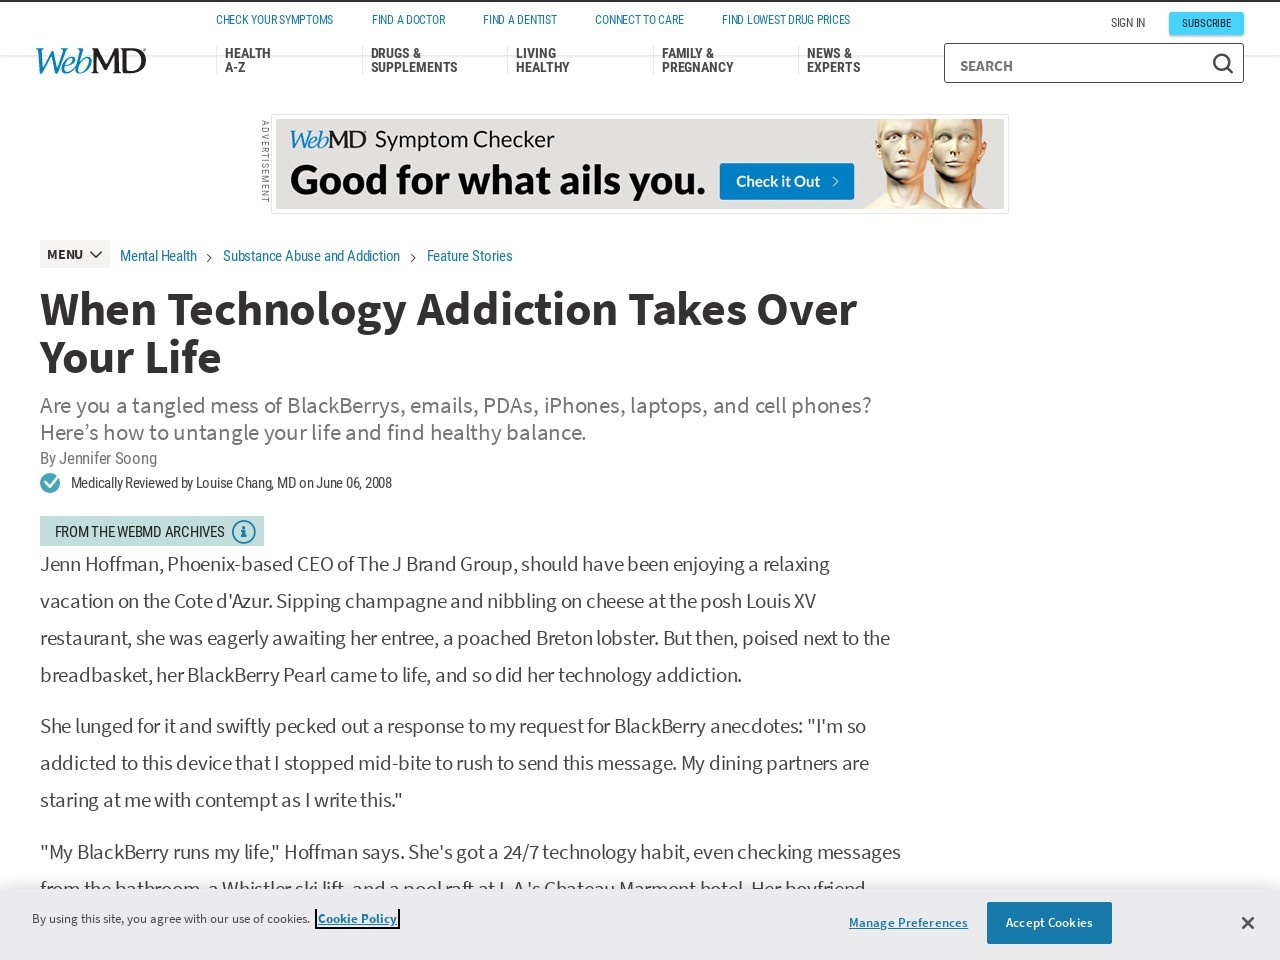 When Technology Addiction Takes Over Your Life – WebMD